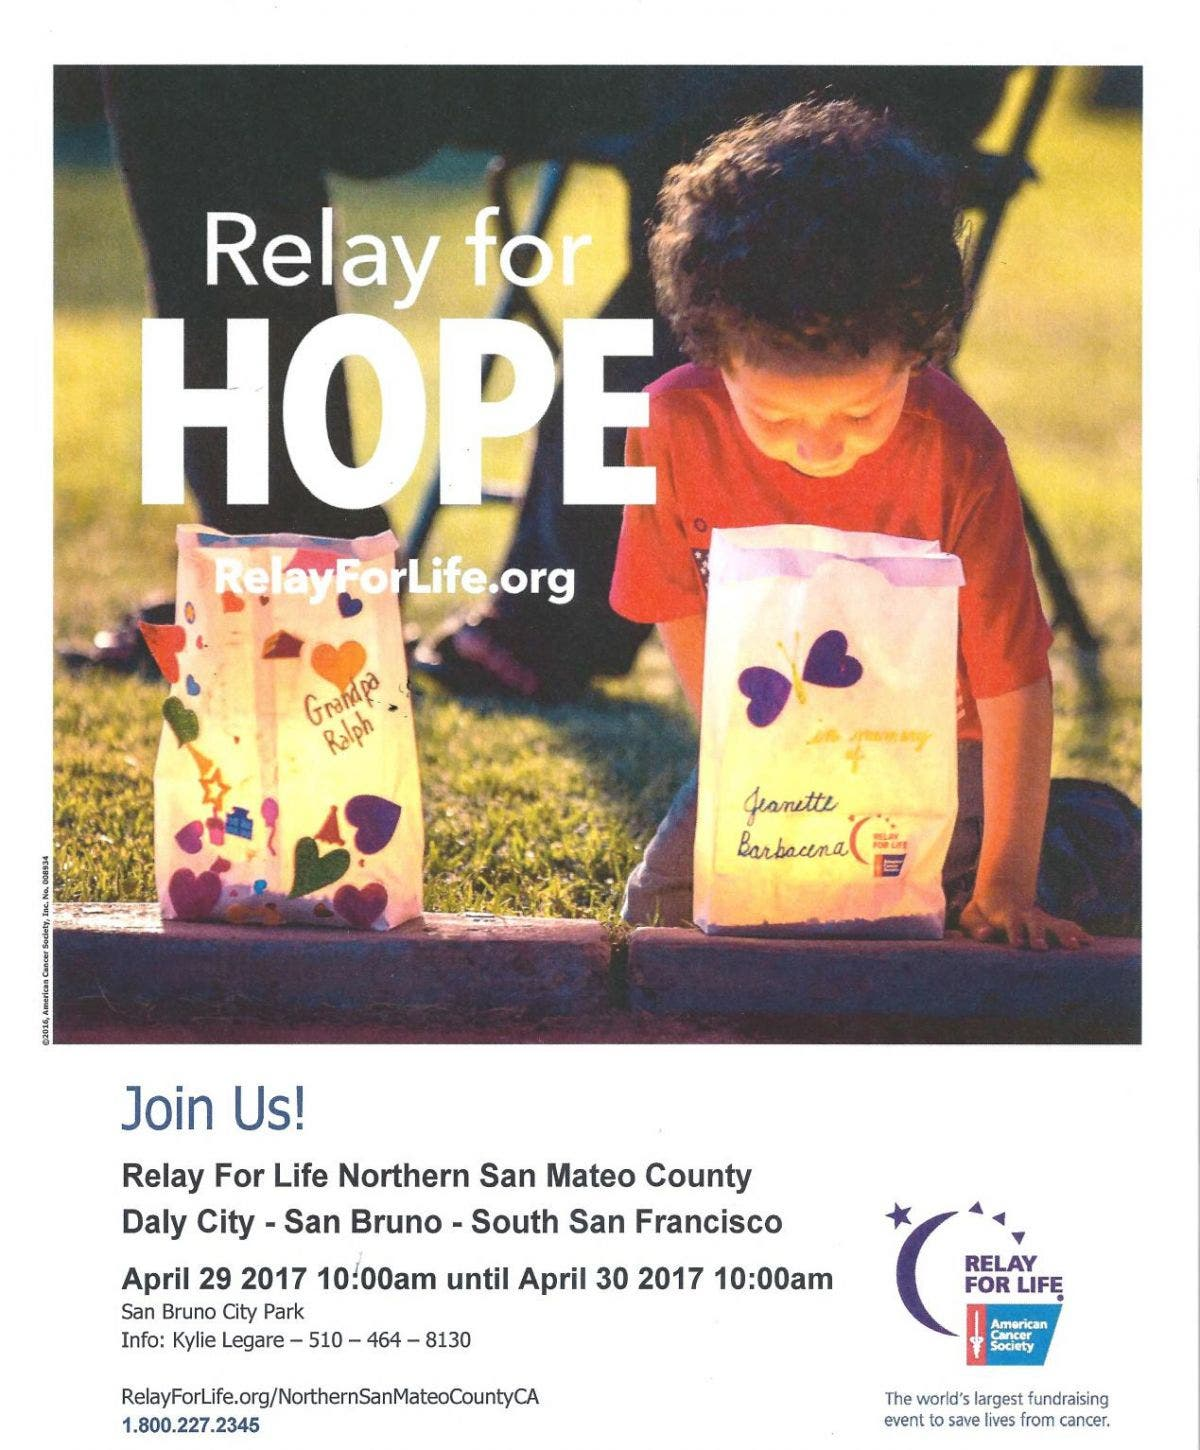 Riechel Reports Your Relay 4 Life Donations Make A